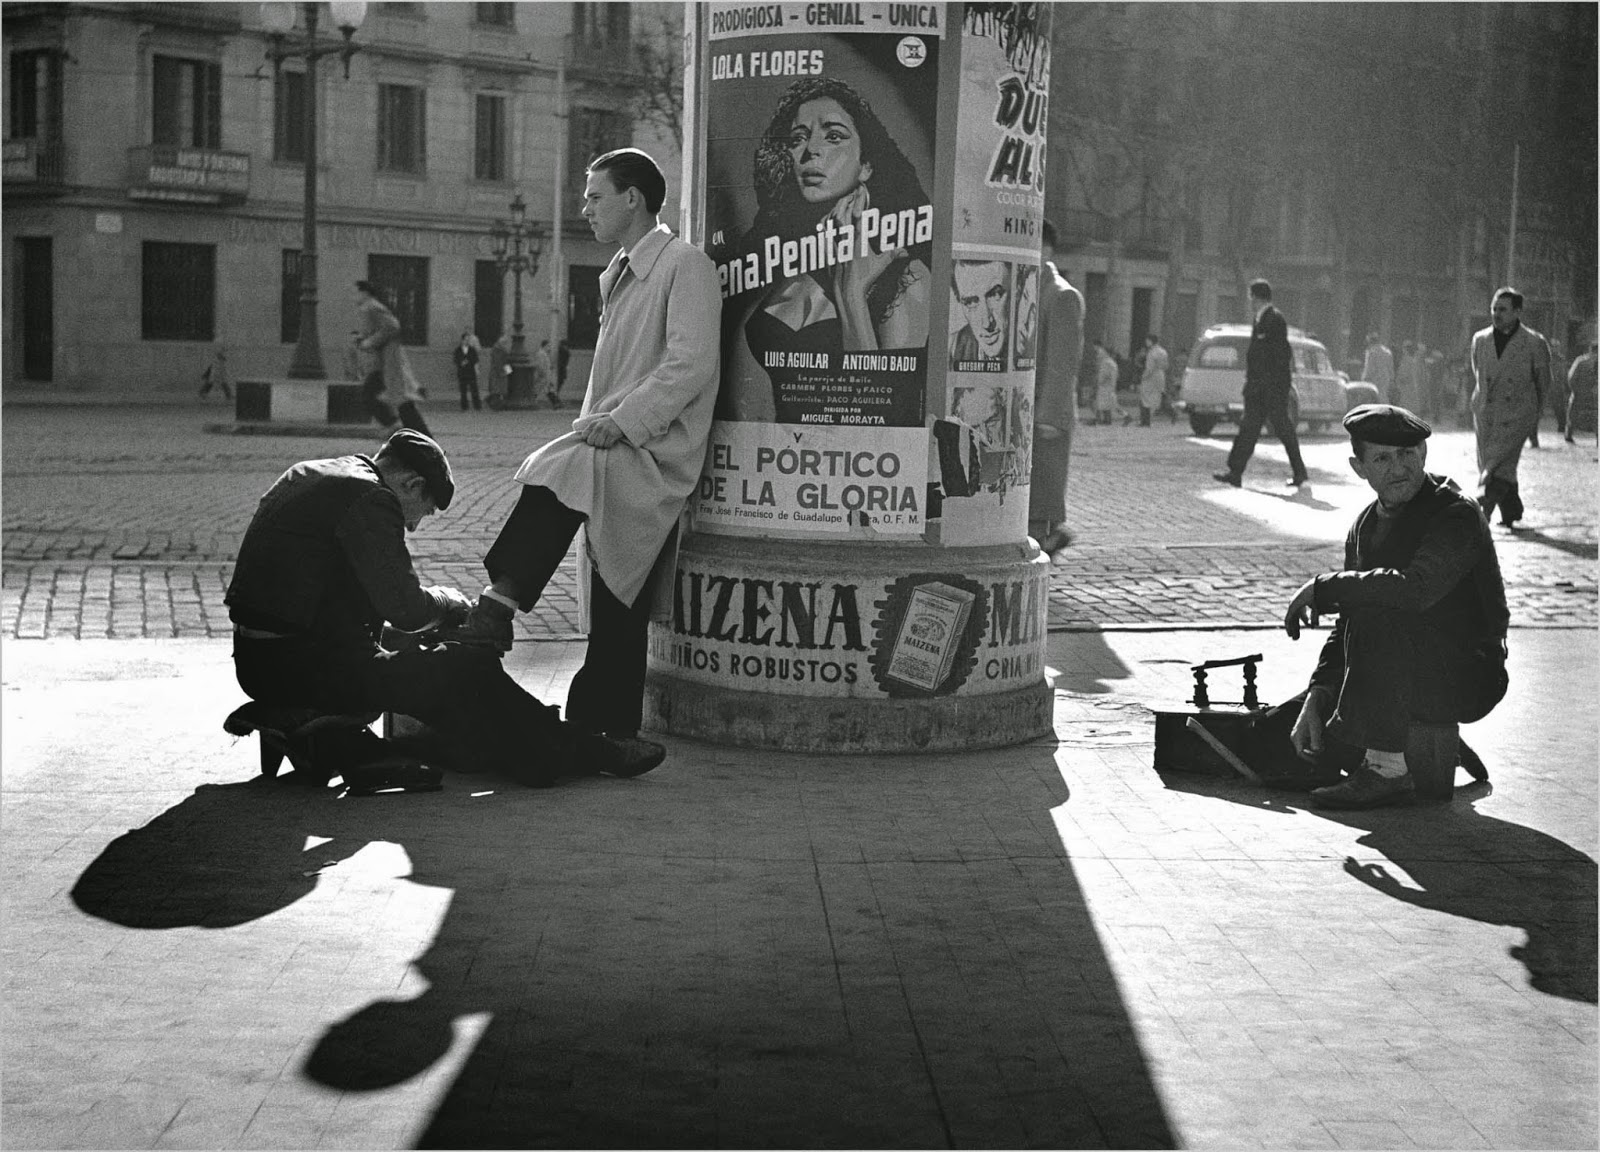 Amazing black white photos of street scenes of madrid and barcelona in the 1950s vintage everyday